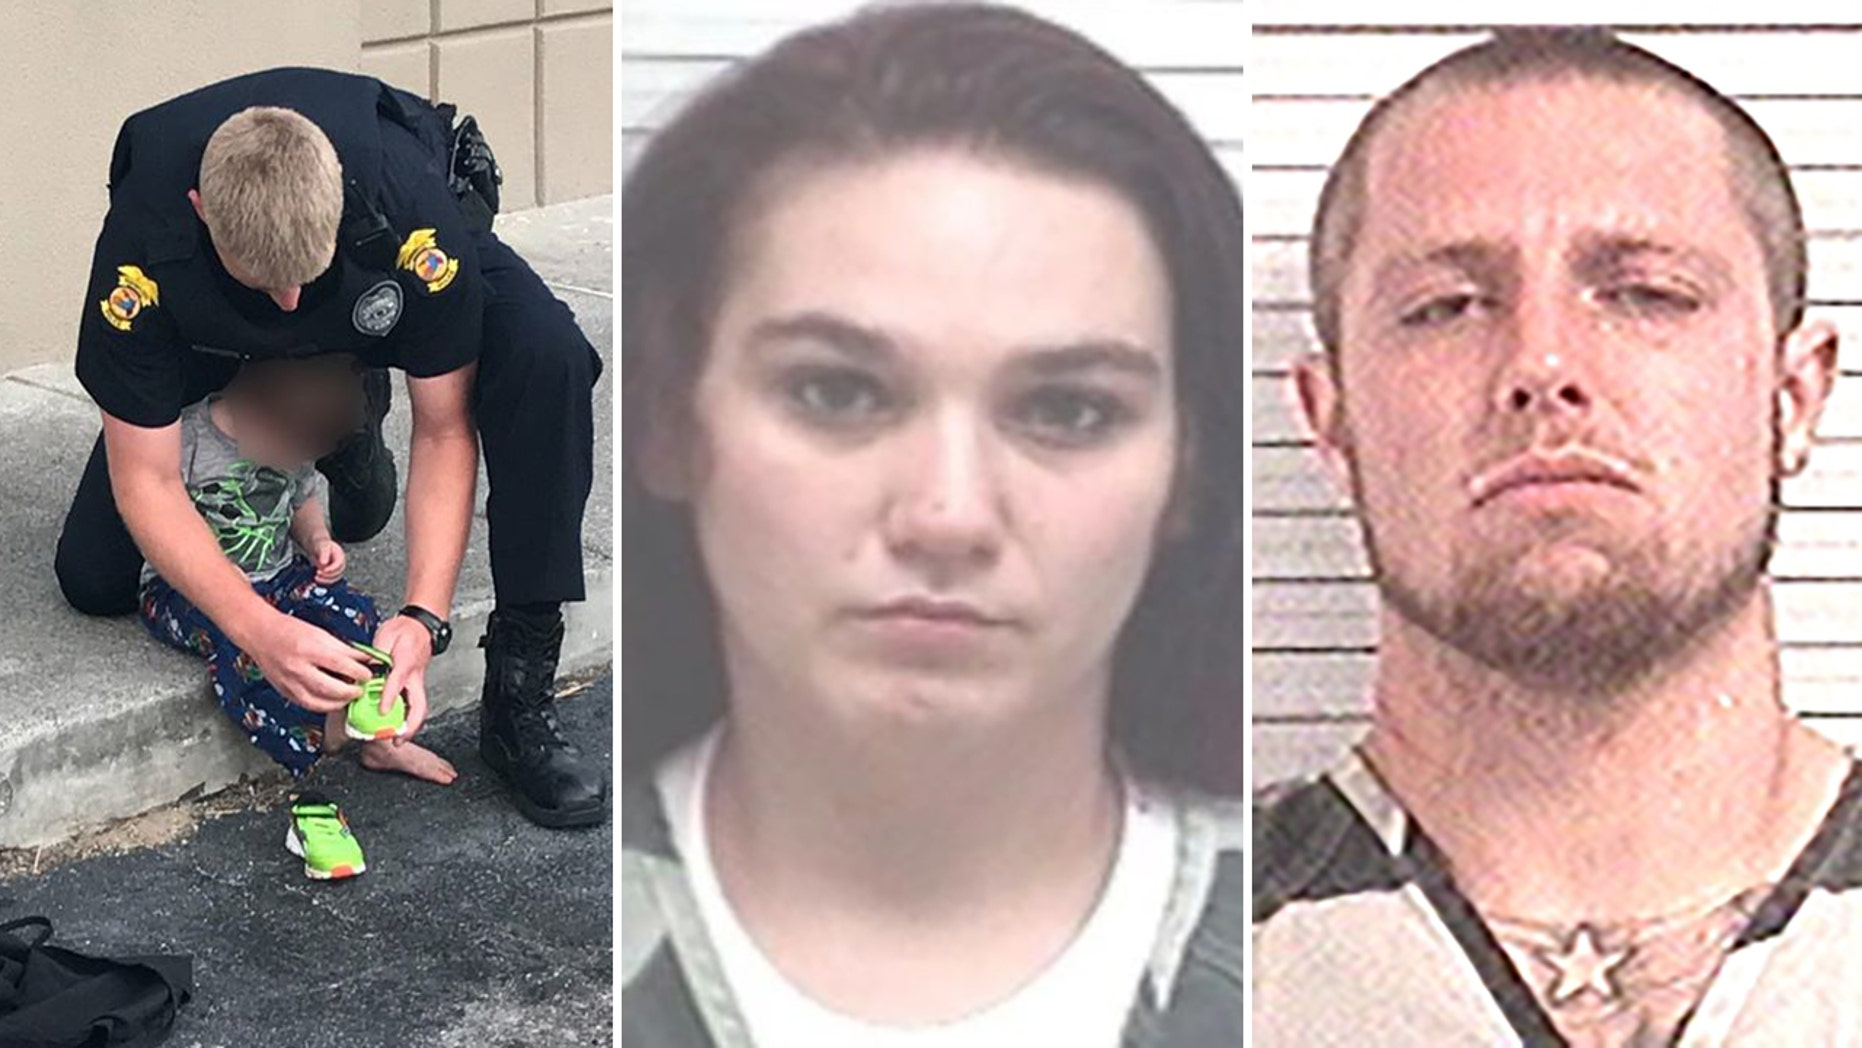 The toddler and his 9-month-old twin siblings were put in the care of the Department of Children and Families. Their mother, 24-year-old Jordyn Freeman, center, and her fiance,27-year-old Randy McMillin, right, are originally from Ohio.